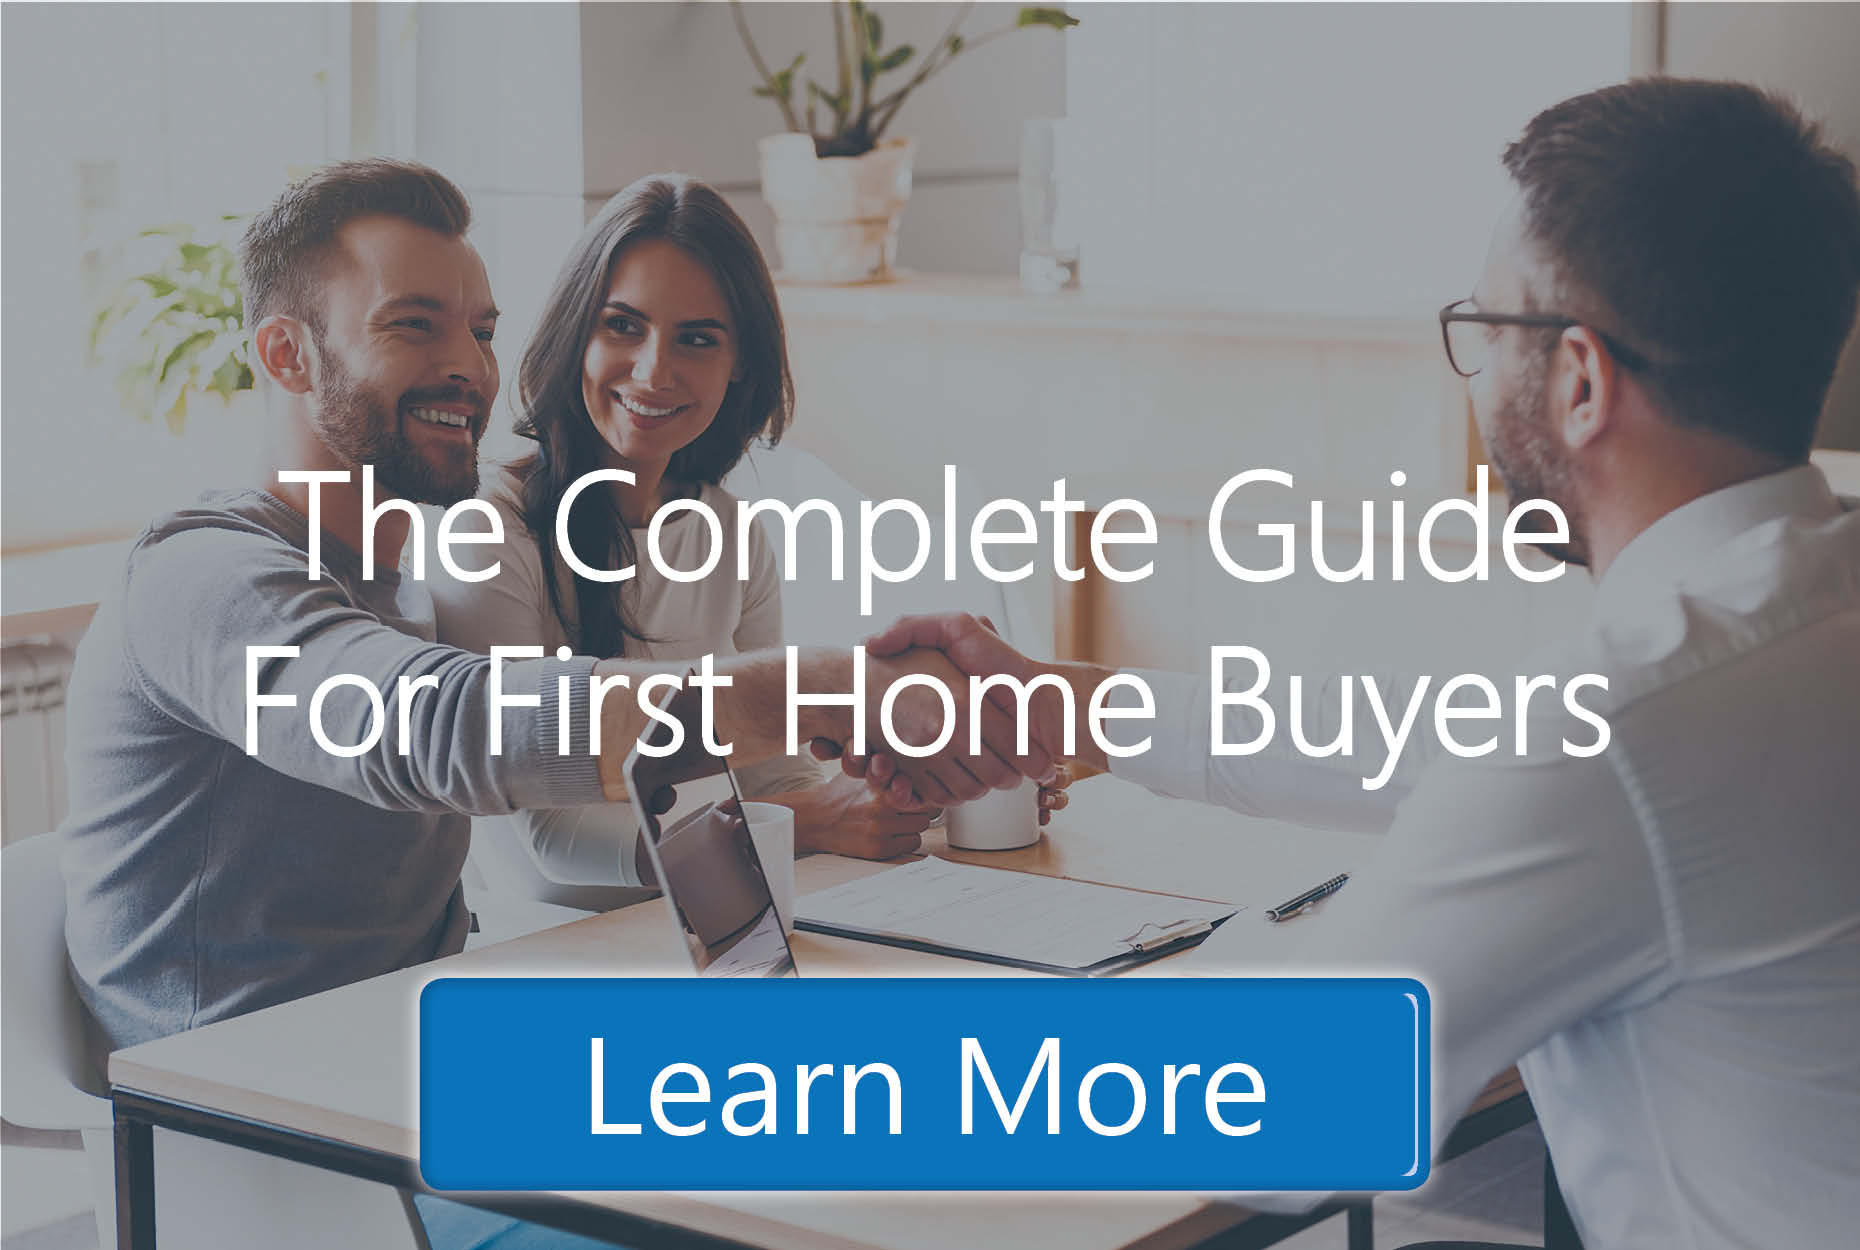 The Complete Guide for First Home Buyers